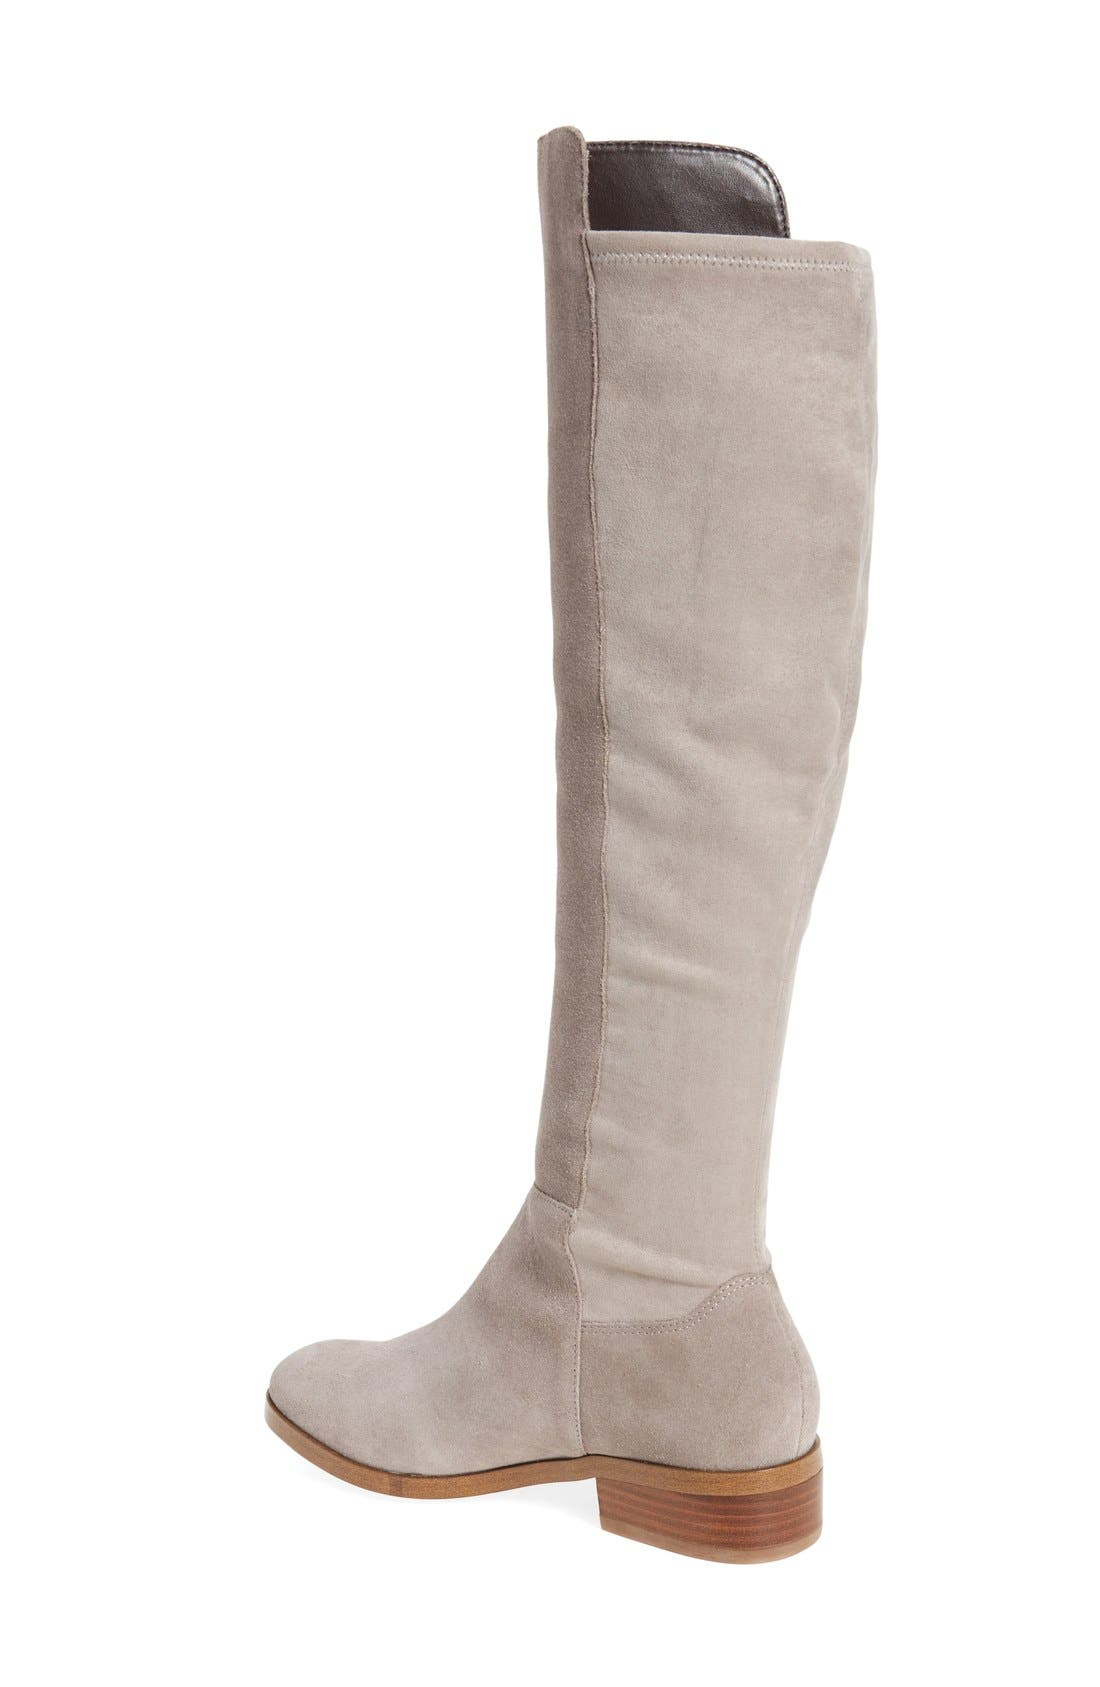 Alternate Image 2  - Sole Society Calypso Over the Knee Boot (Women)